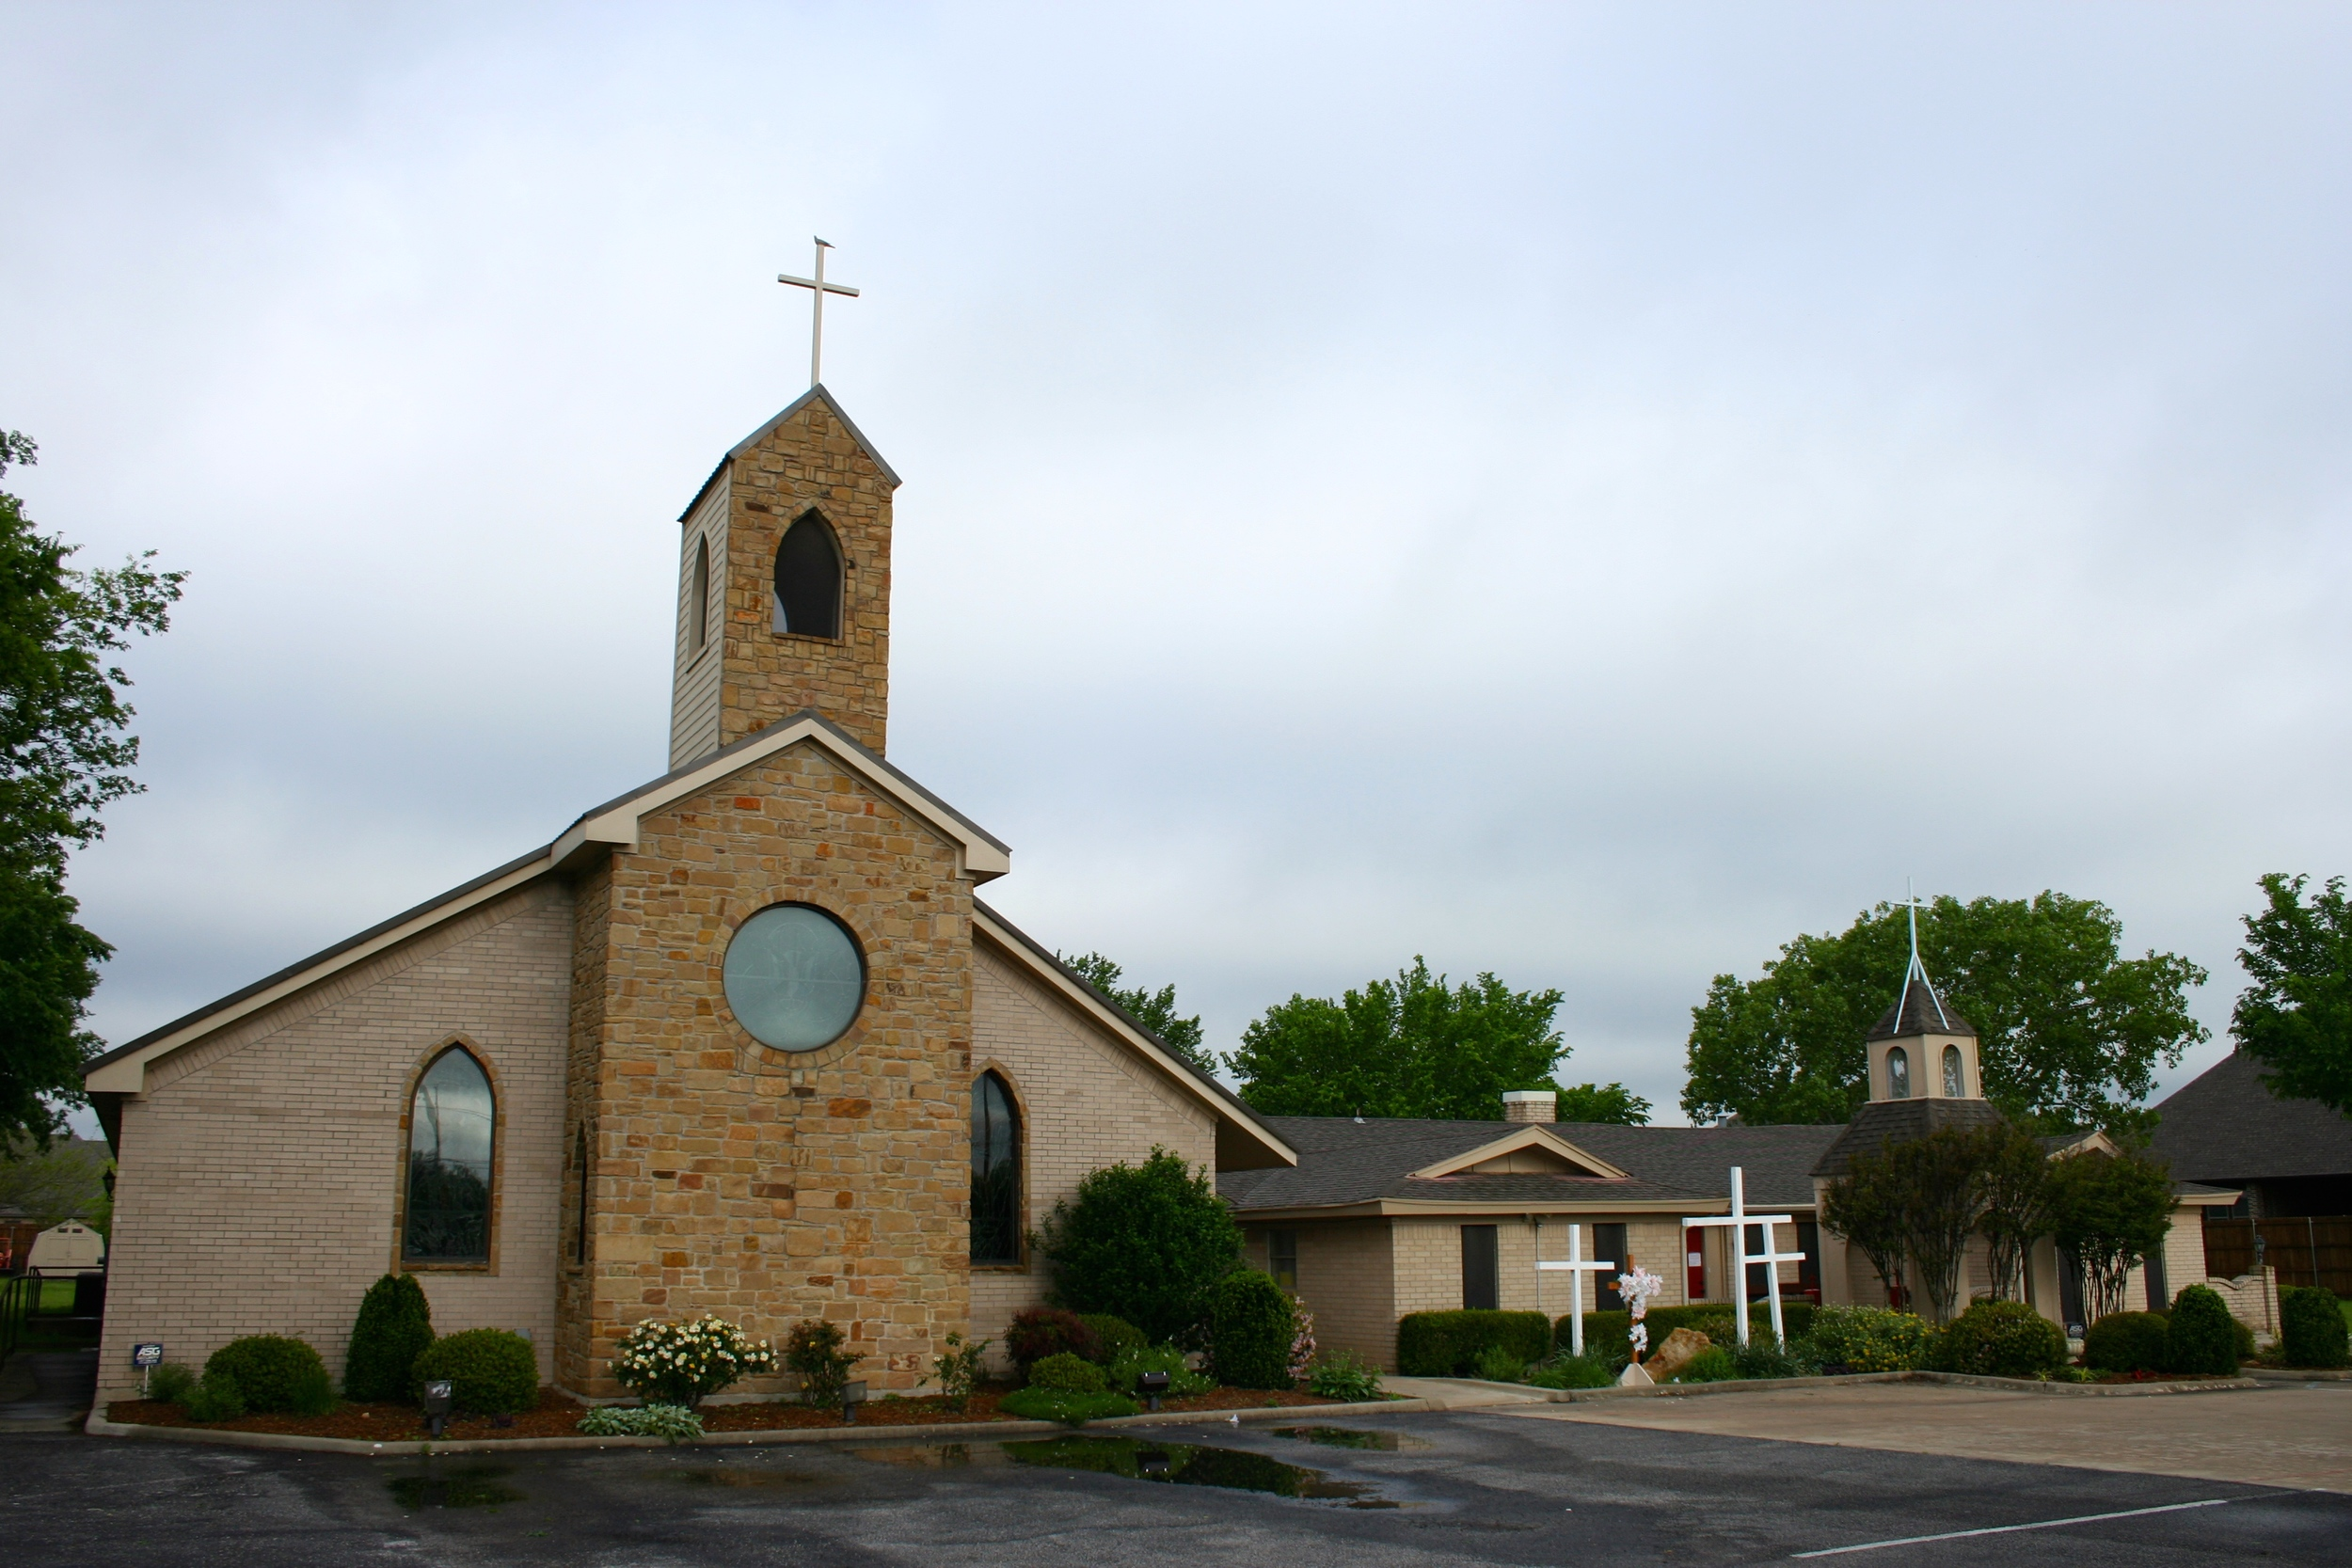 Holy Shepherd Lutheran Church, Haslet, Texas